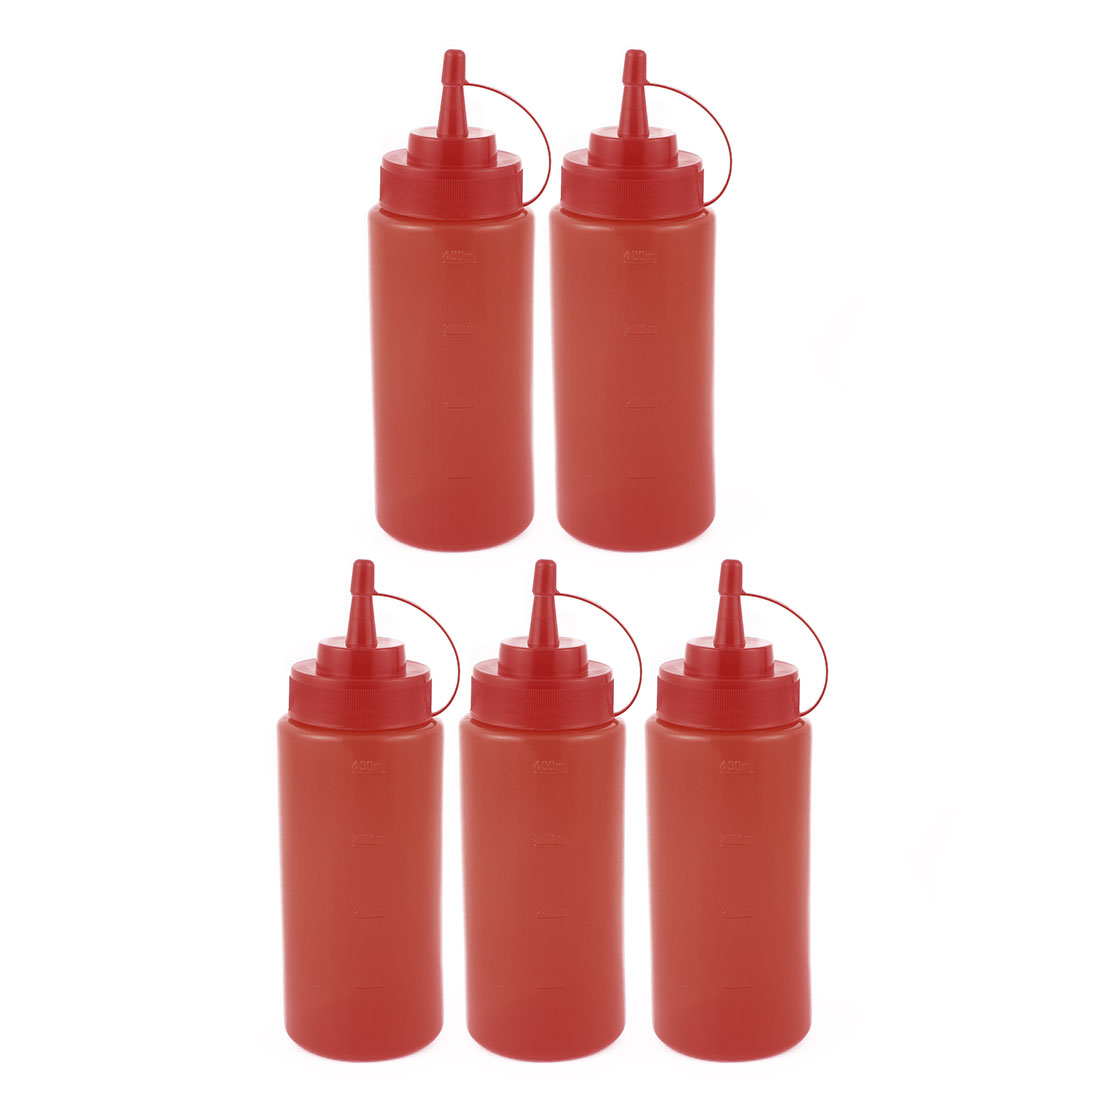 5Pcs 400ml Kitchen Plastic Squeeze Bottles Condiment Ketchup Mustard Oil Salt by